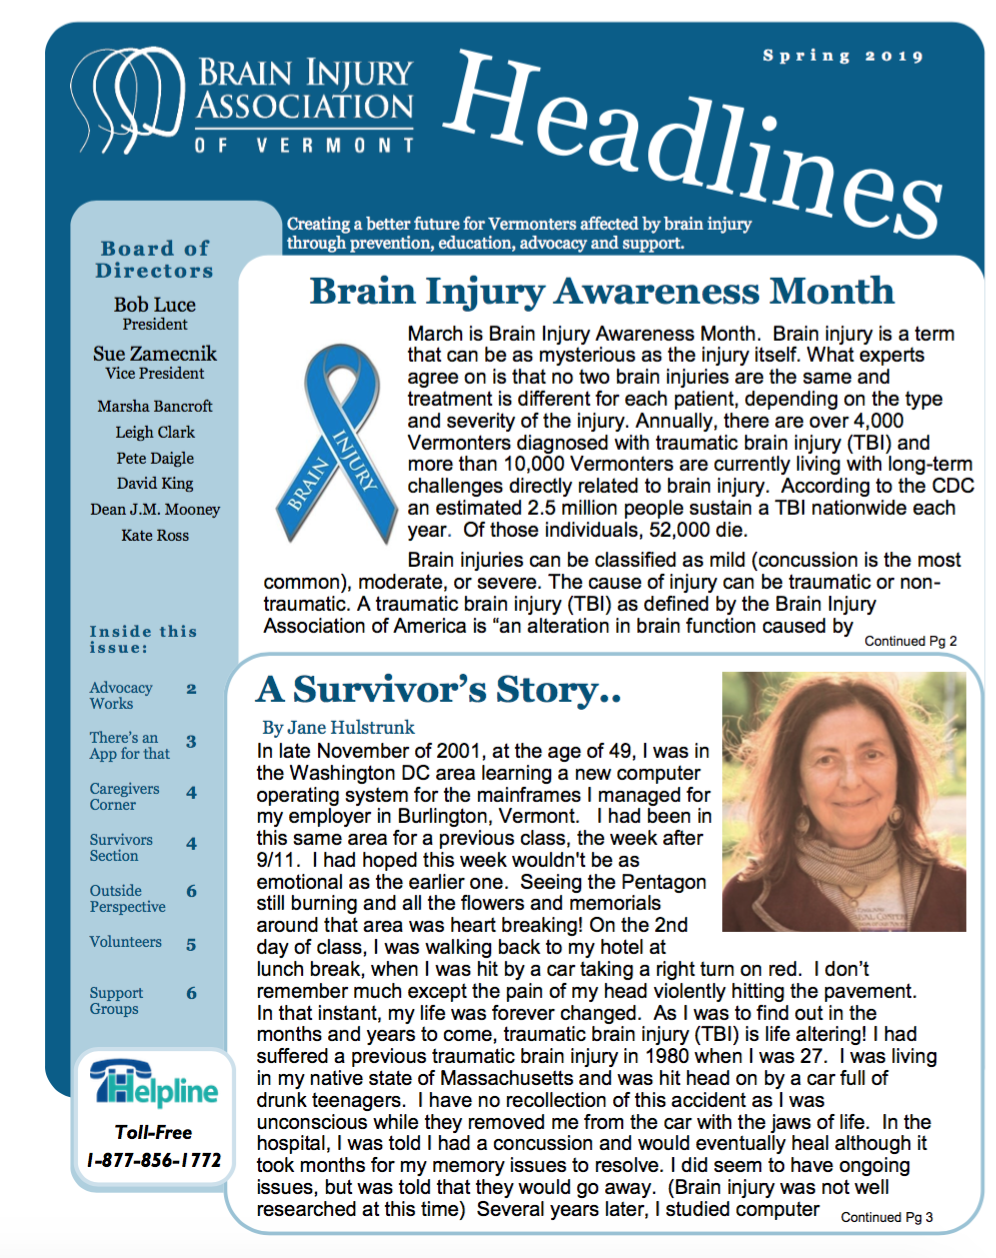 SPRING 2019 NEWSLETTER - Inside:A Survivor's Story By Jane HulstrunkHow well are you taking care of yourself? ChecklistLearning to Remember Techniques